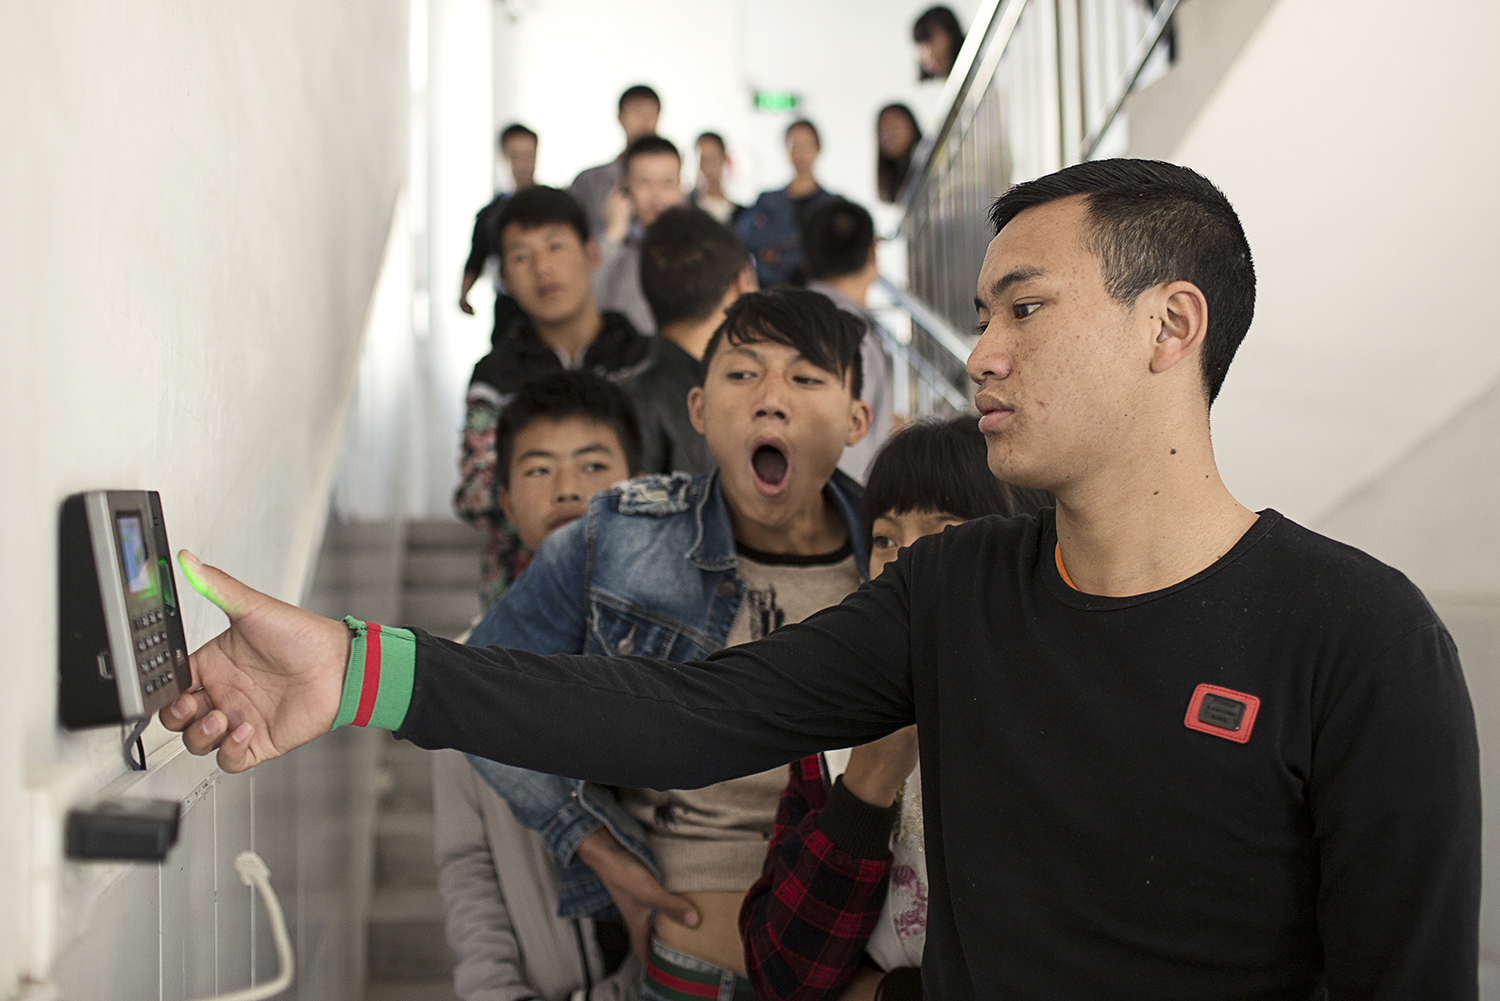 January 2, A Xia (front) and his coworkers, all members of the Yi minority from the Liangshan region of Sichuan, start their first day of work at an electronic device factory in Shenzhen. There are now an estimated 300,000 Yi workers in the Pearl River Delta. (Zhou Qiang)